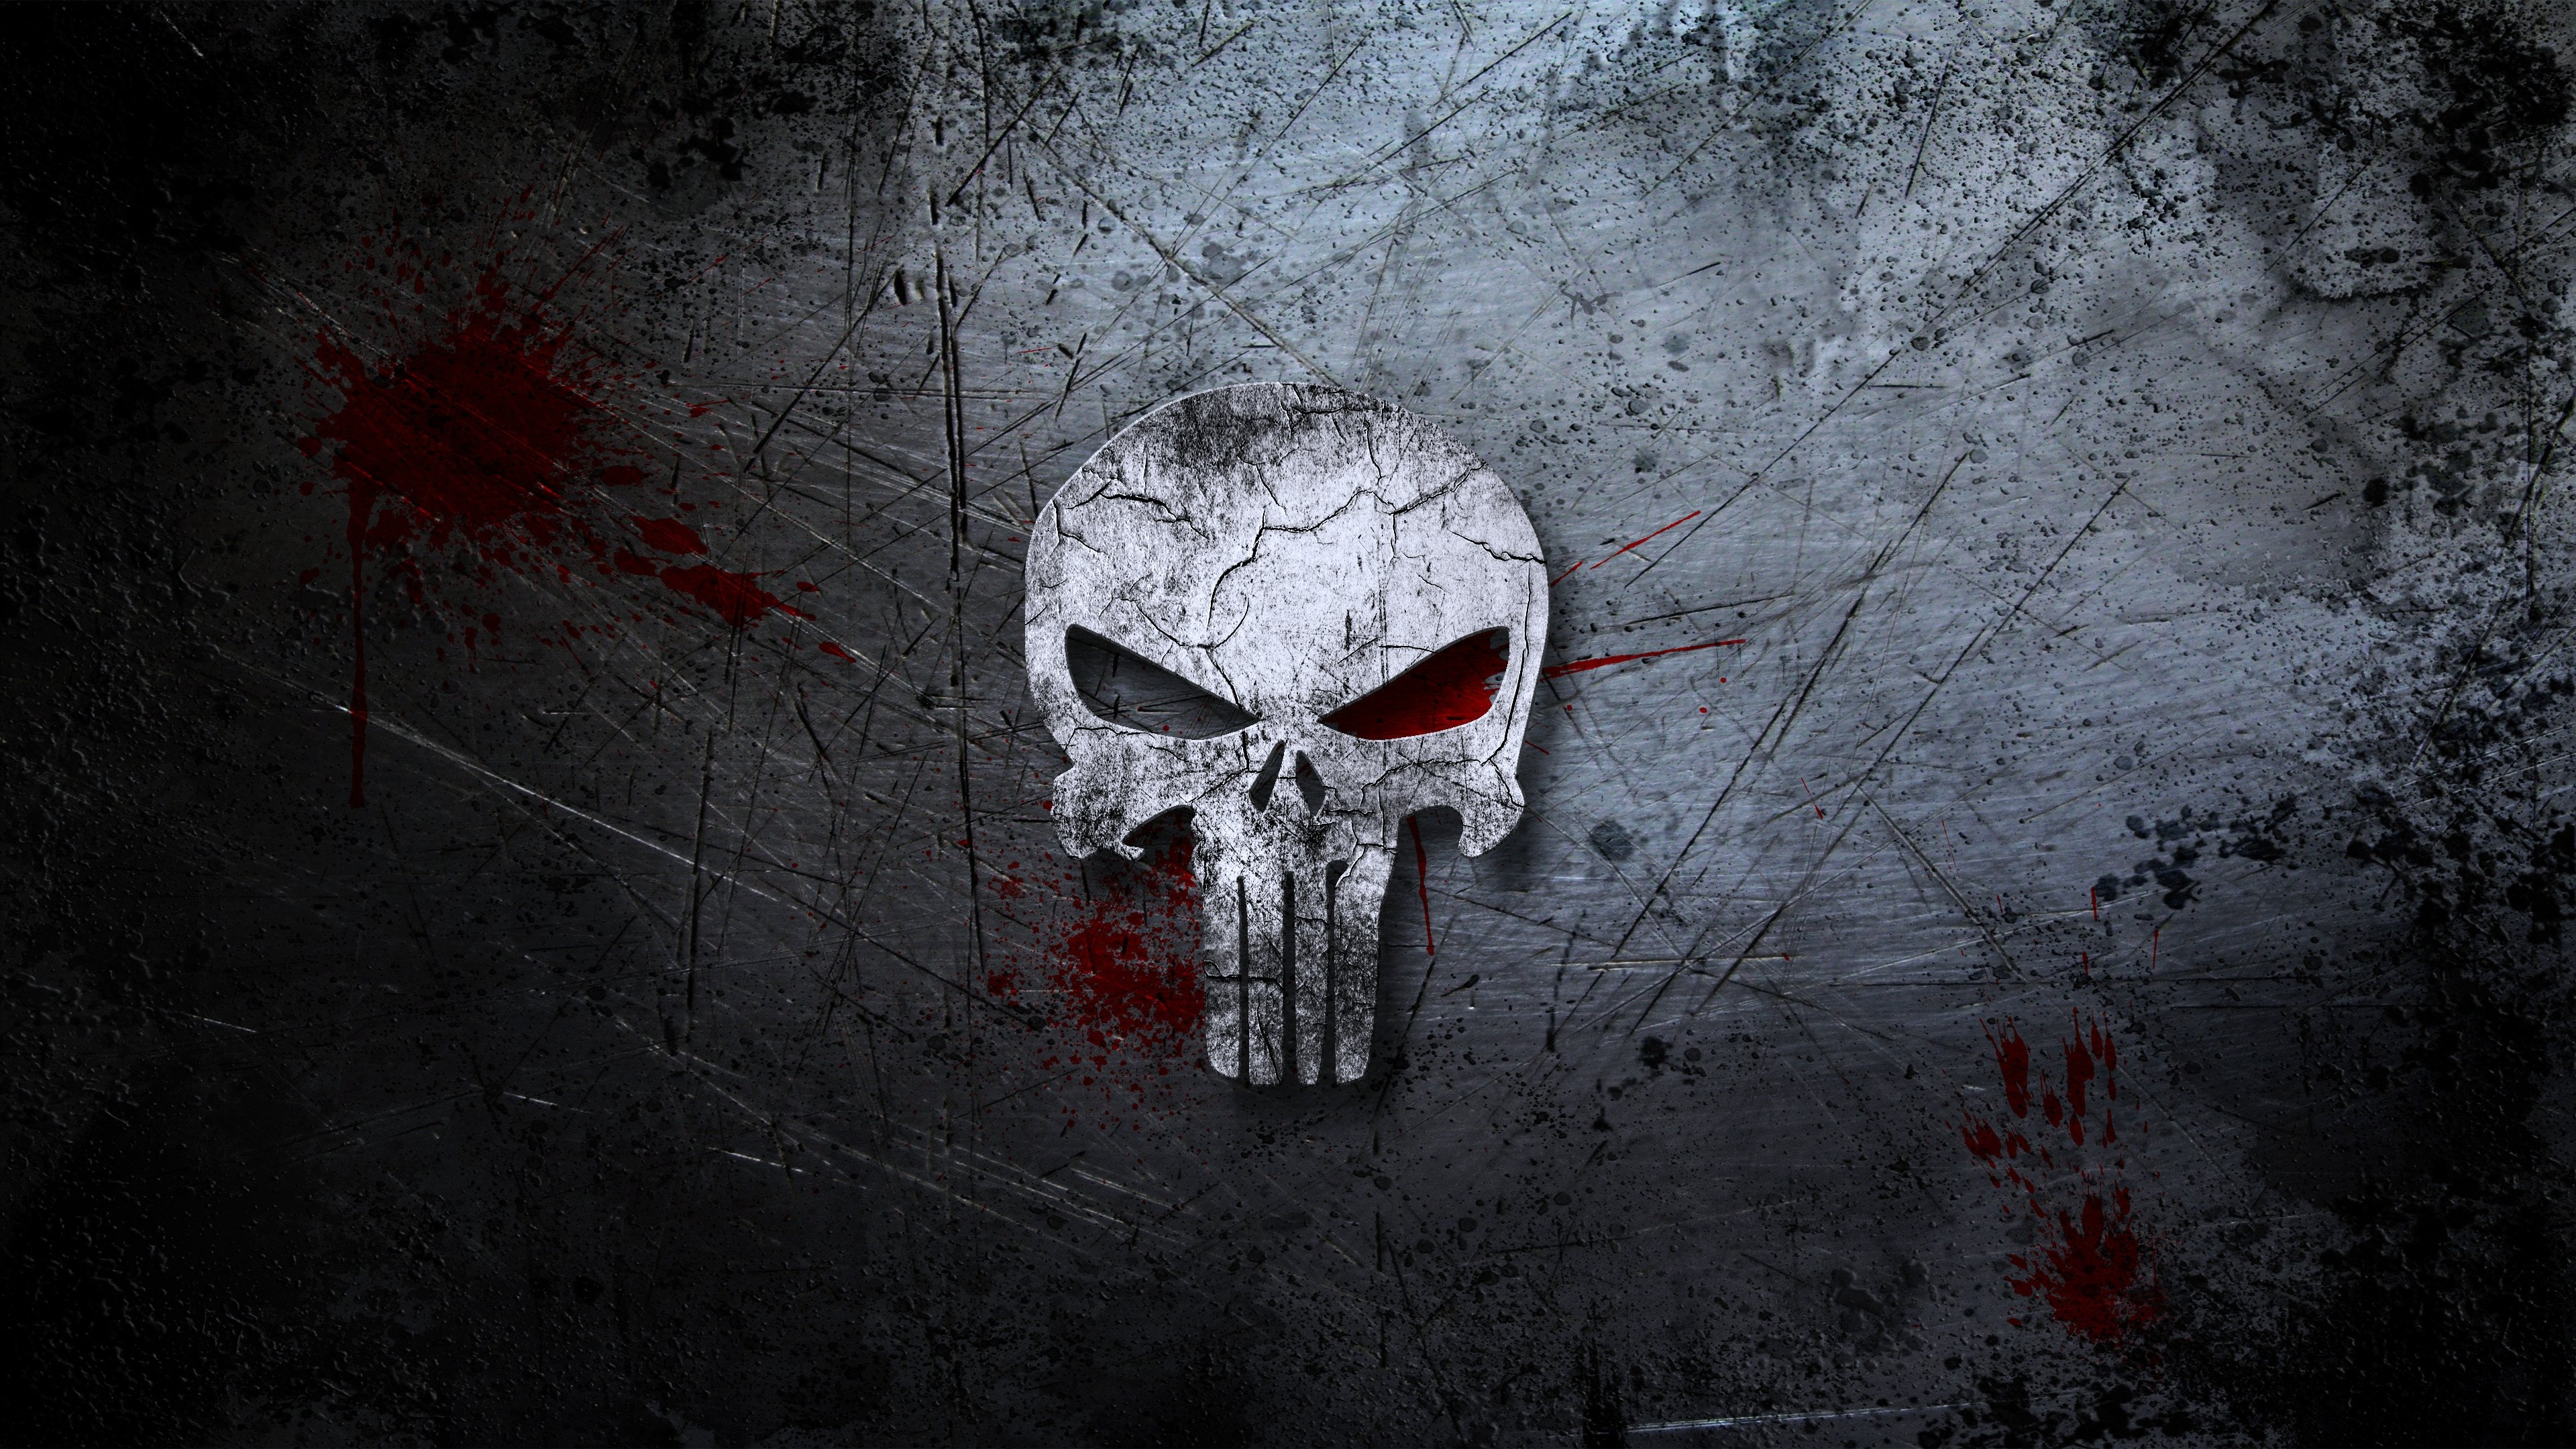 Deadpool Wallpaper Hd 1080p Punisher Skull Background Blood Scratches Movies Wall